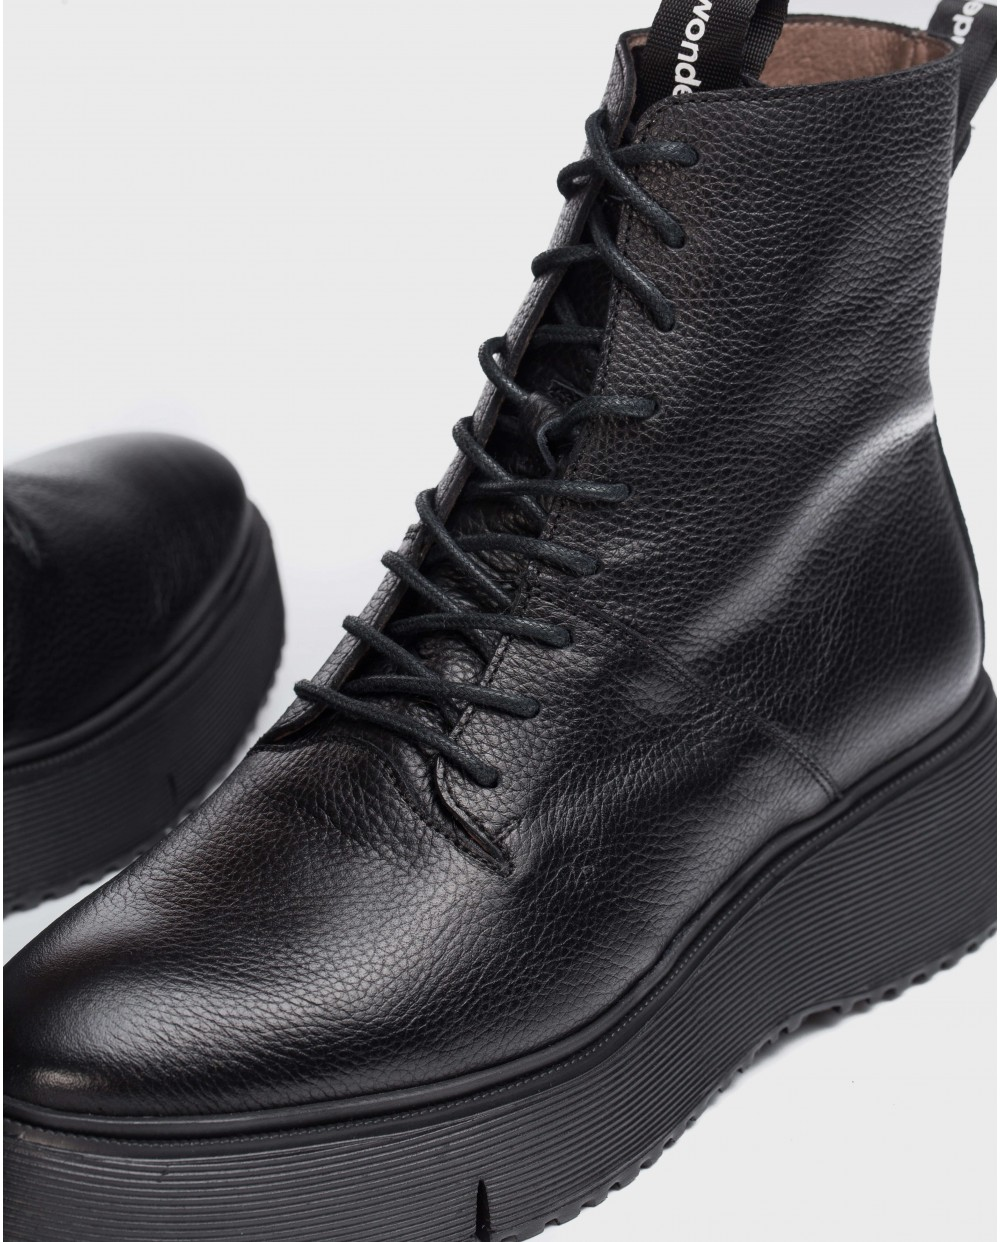 Wonders-Ankle Boots-Black Bristol Ankle boot